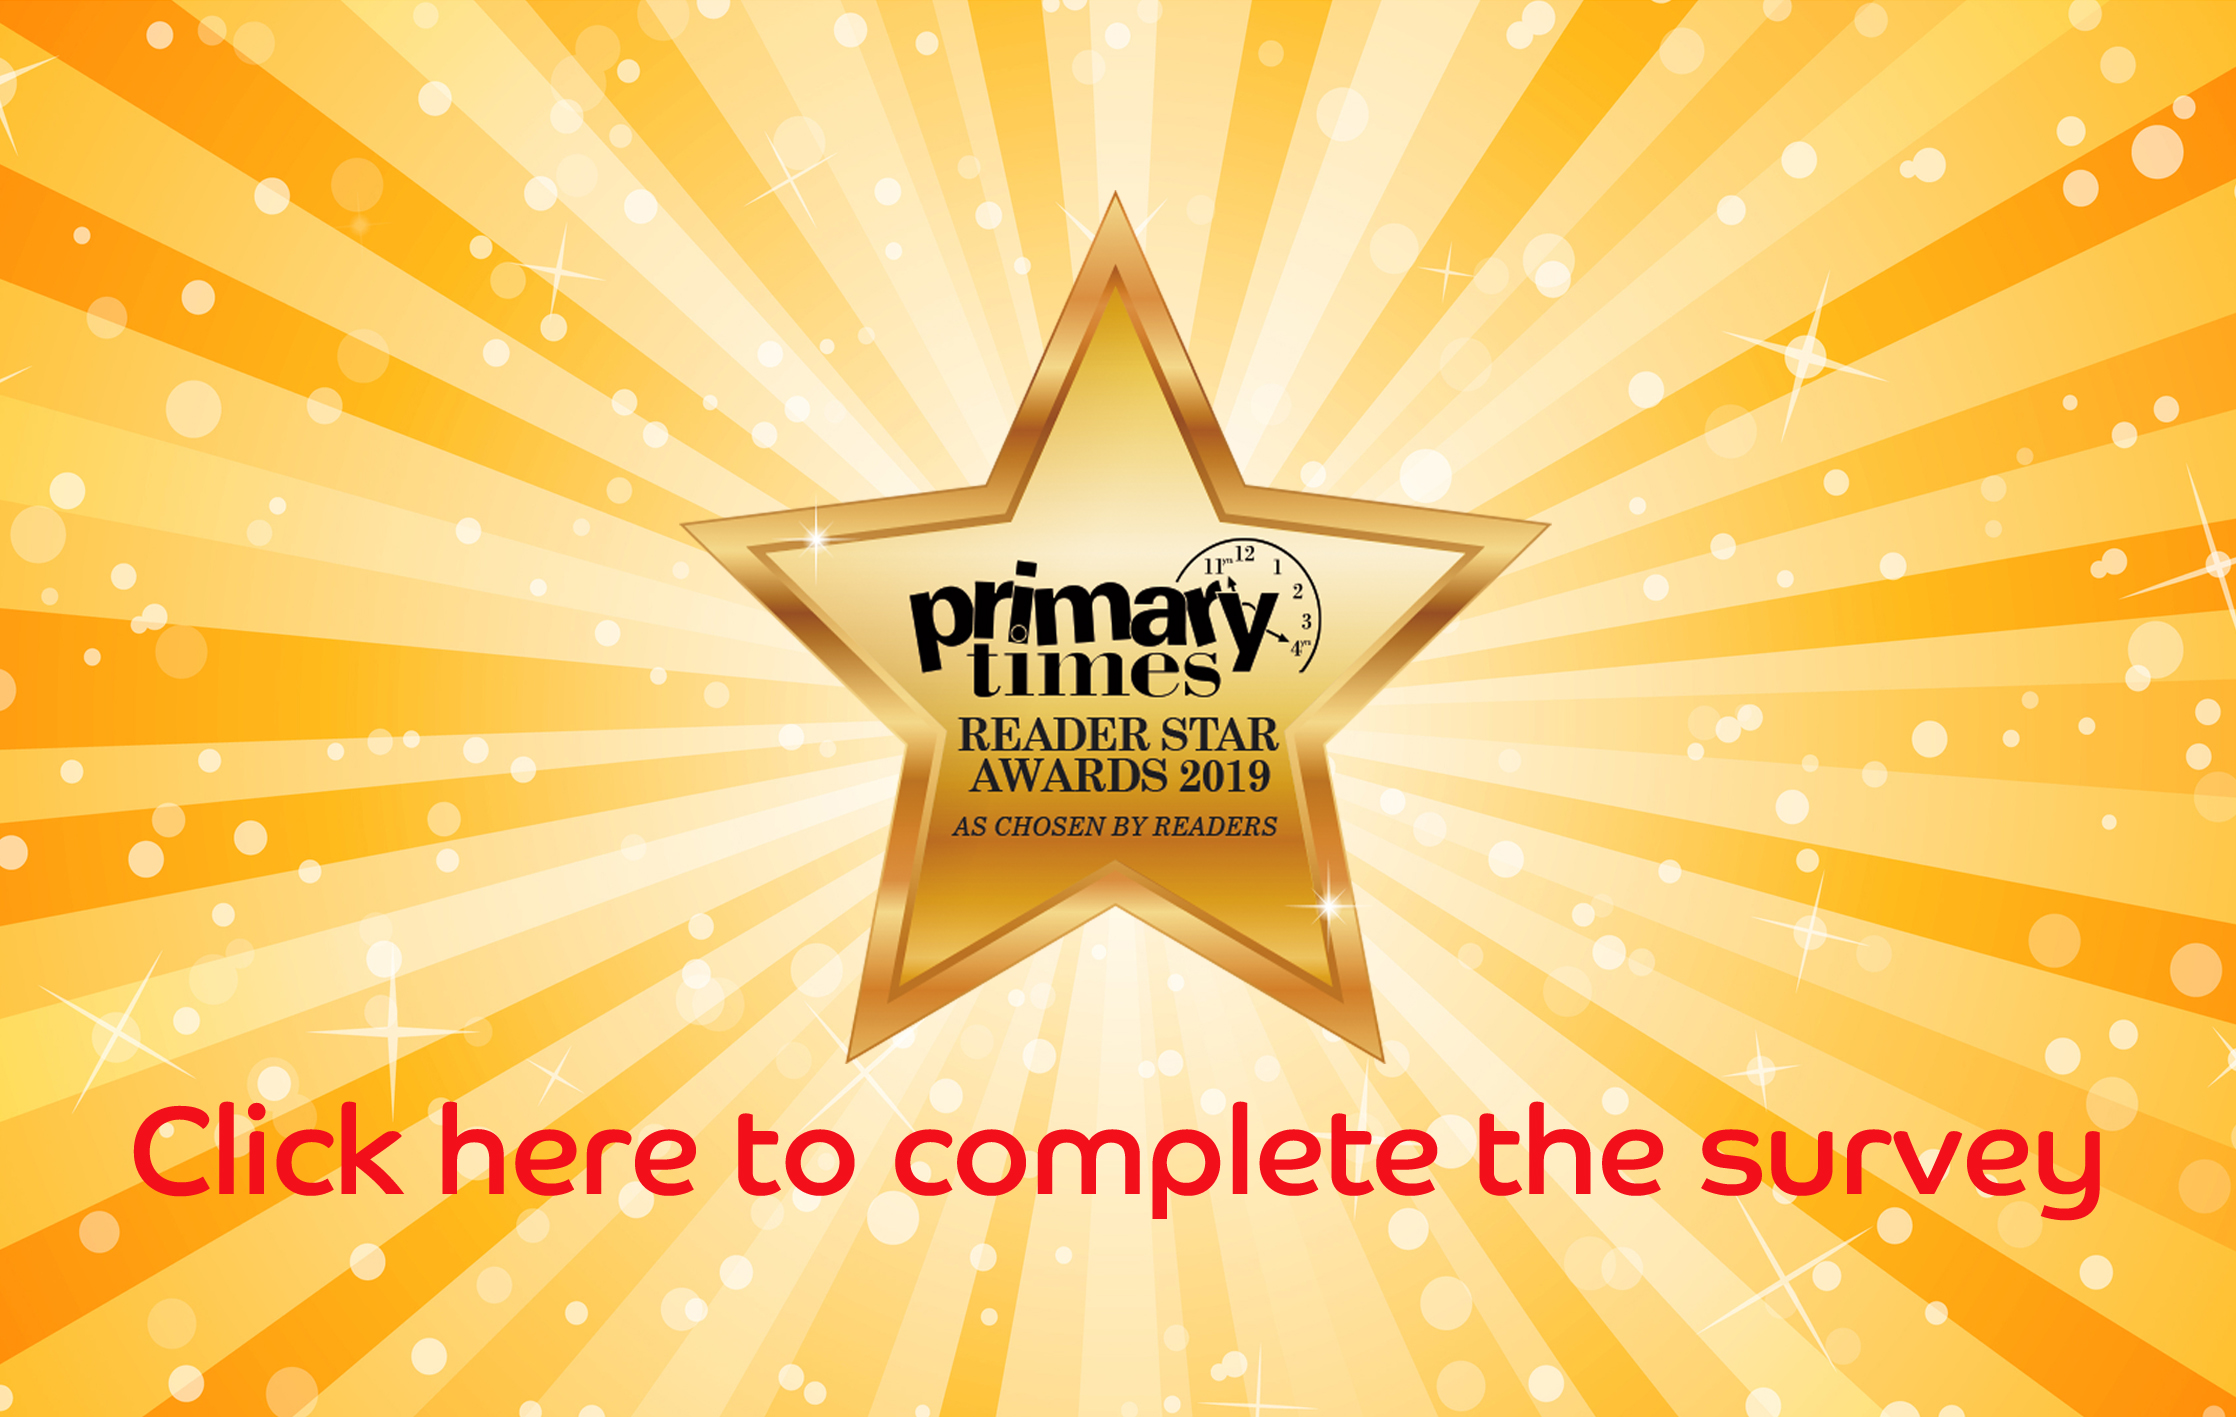 Primary Times Cornwall Reader Star Awards 2019